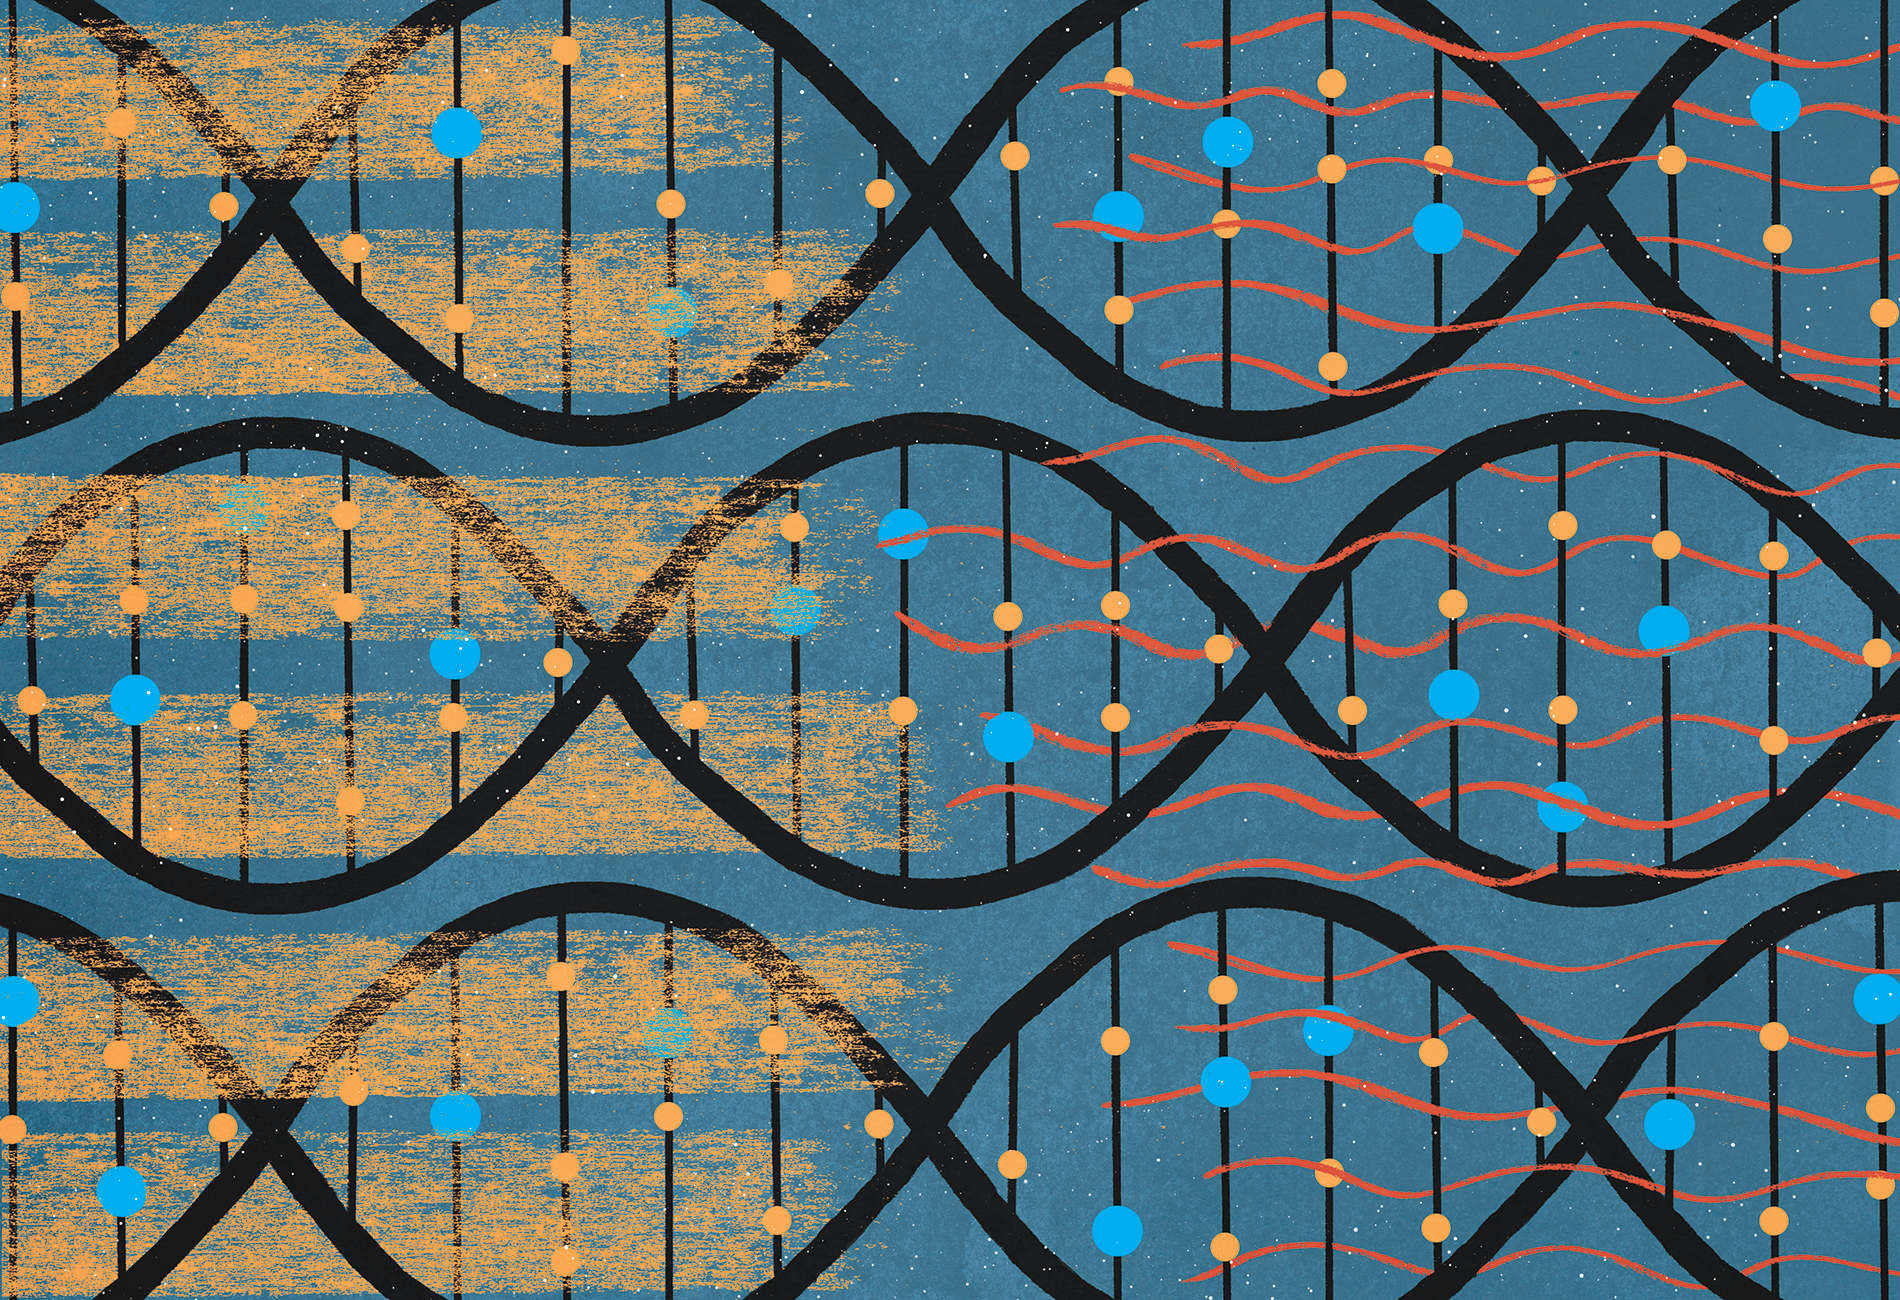 illustration shows DNA strands underneath overlapping textures, signifying blurred lines